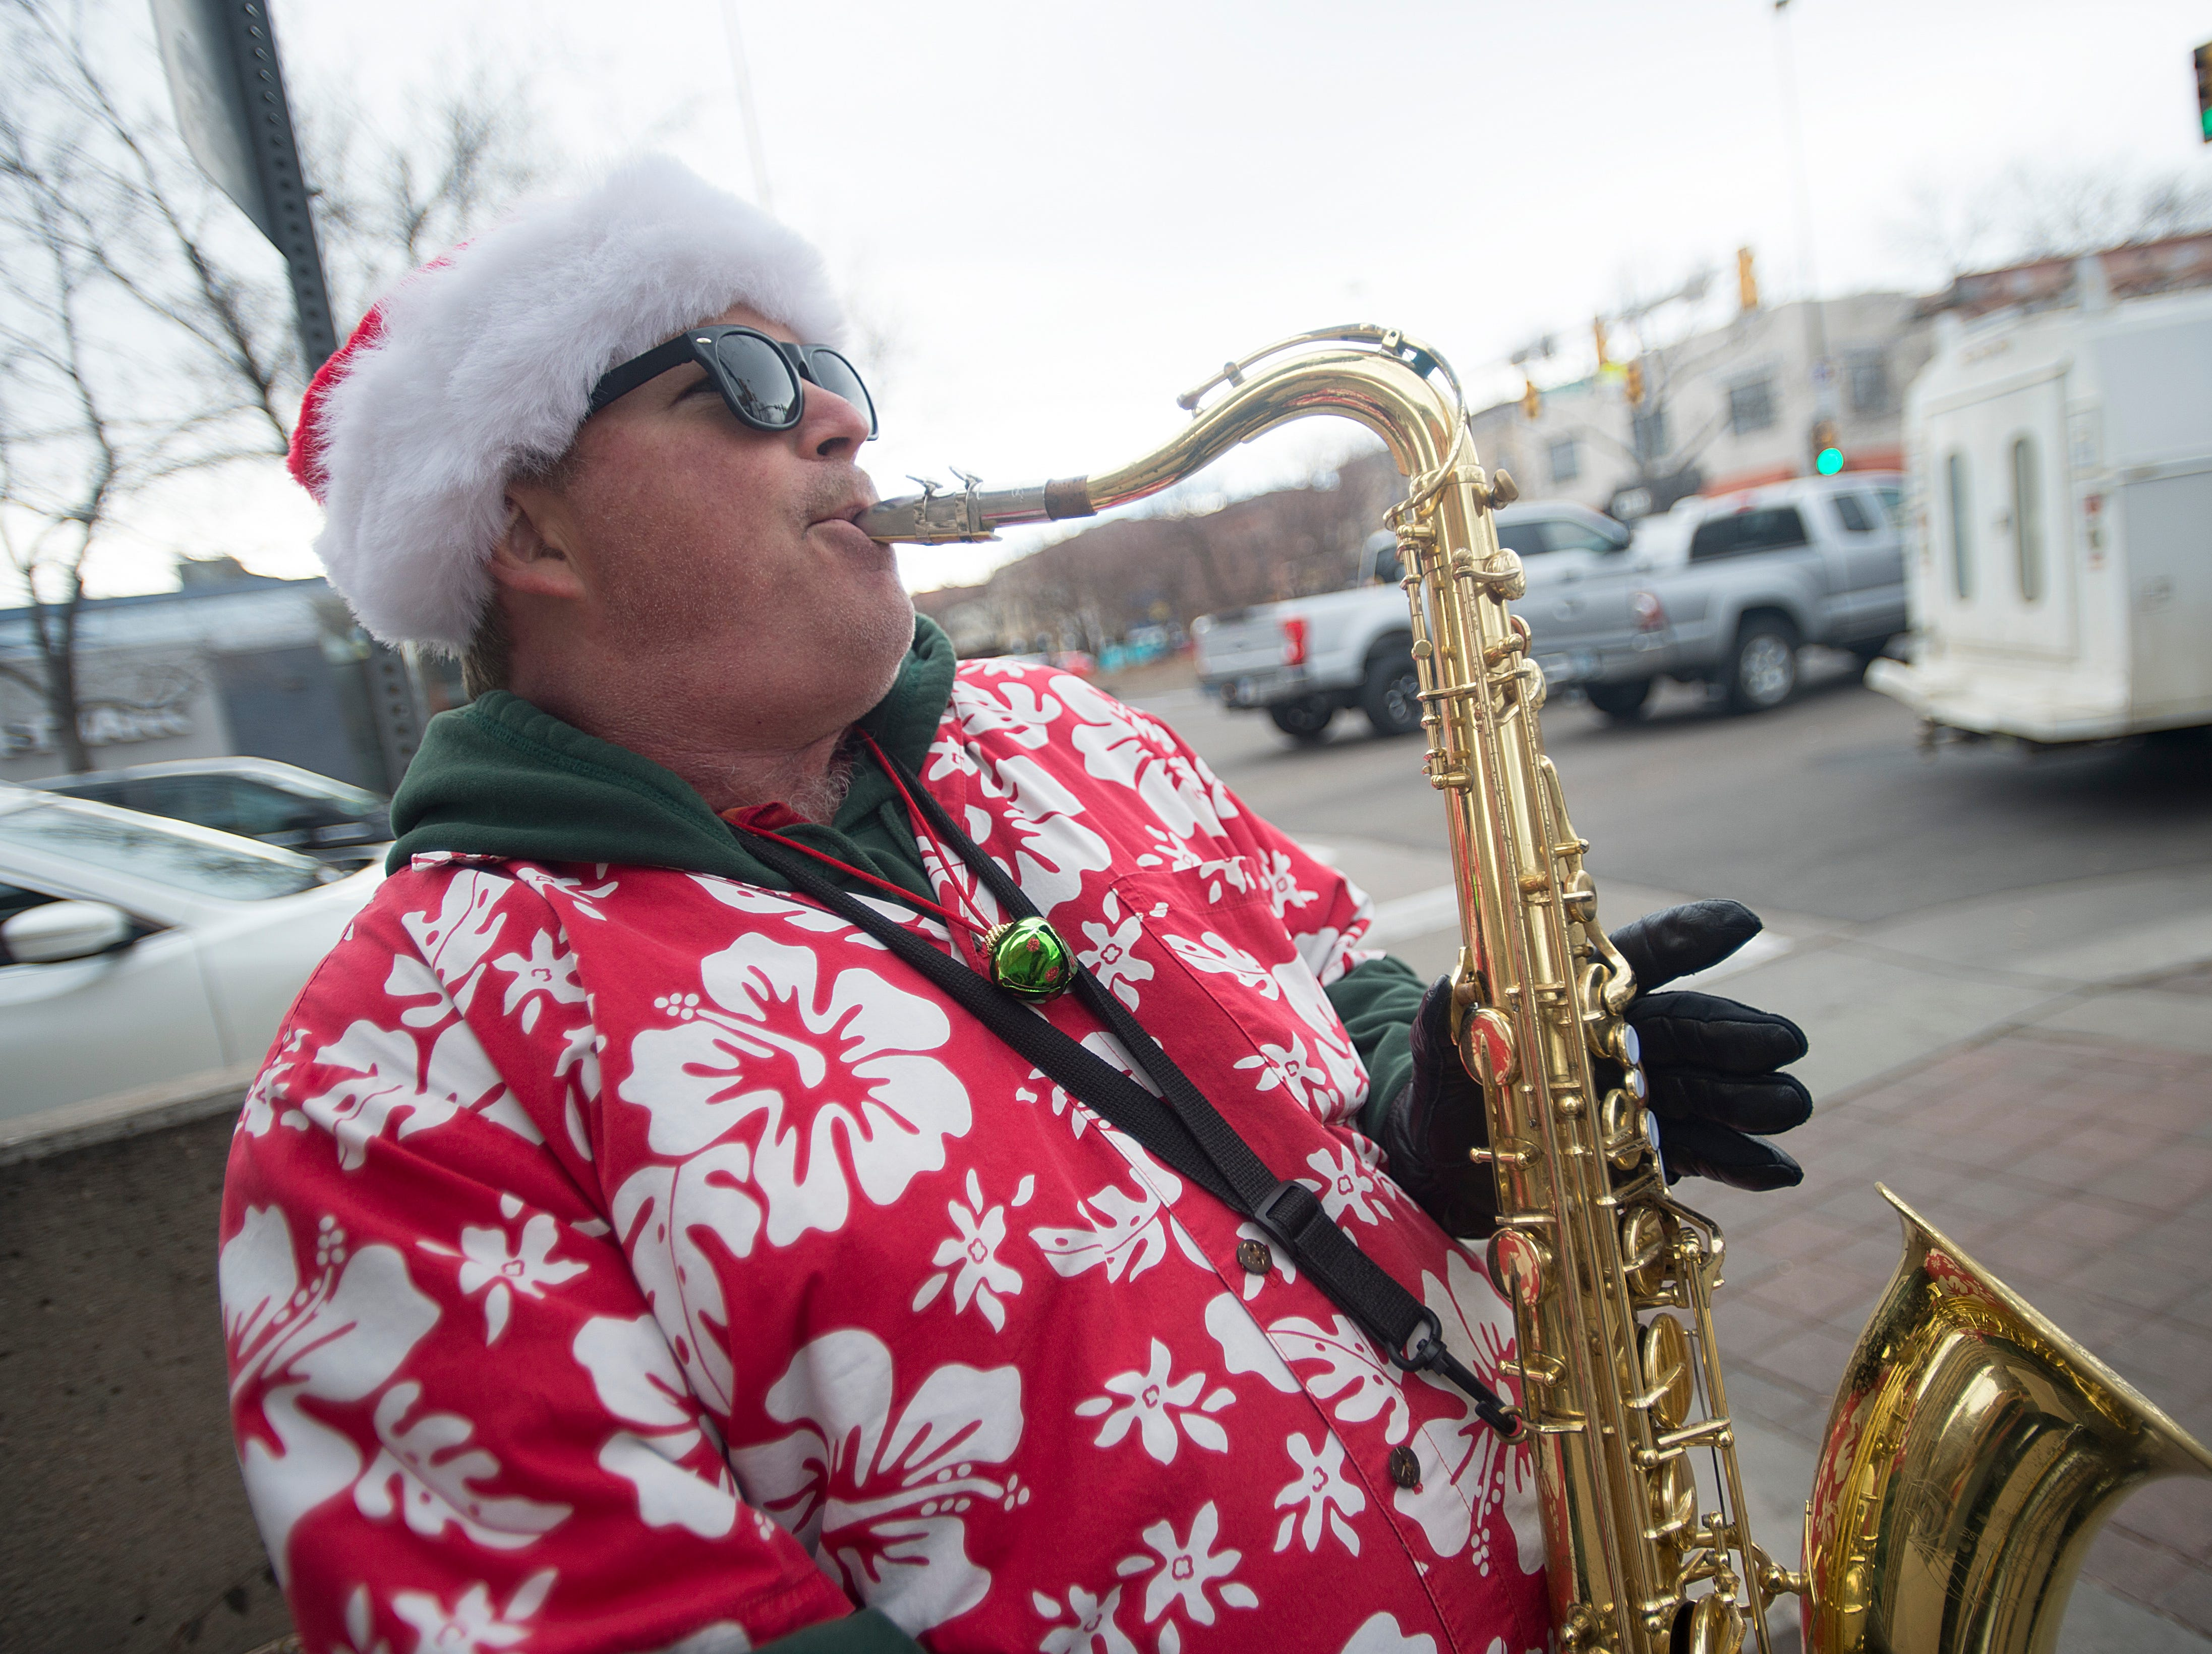 Michael Brown performs Christmas tunes on his saxophone for tips in Old Town on Monday, December 24, 2018.